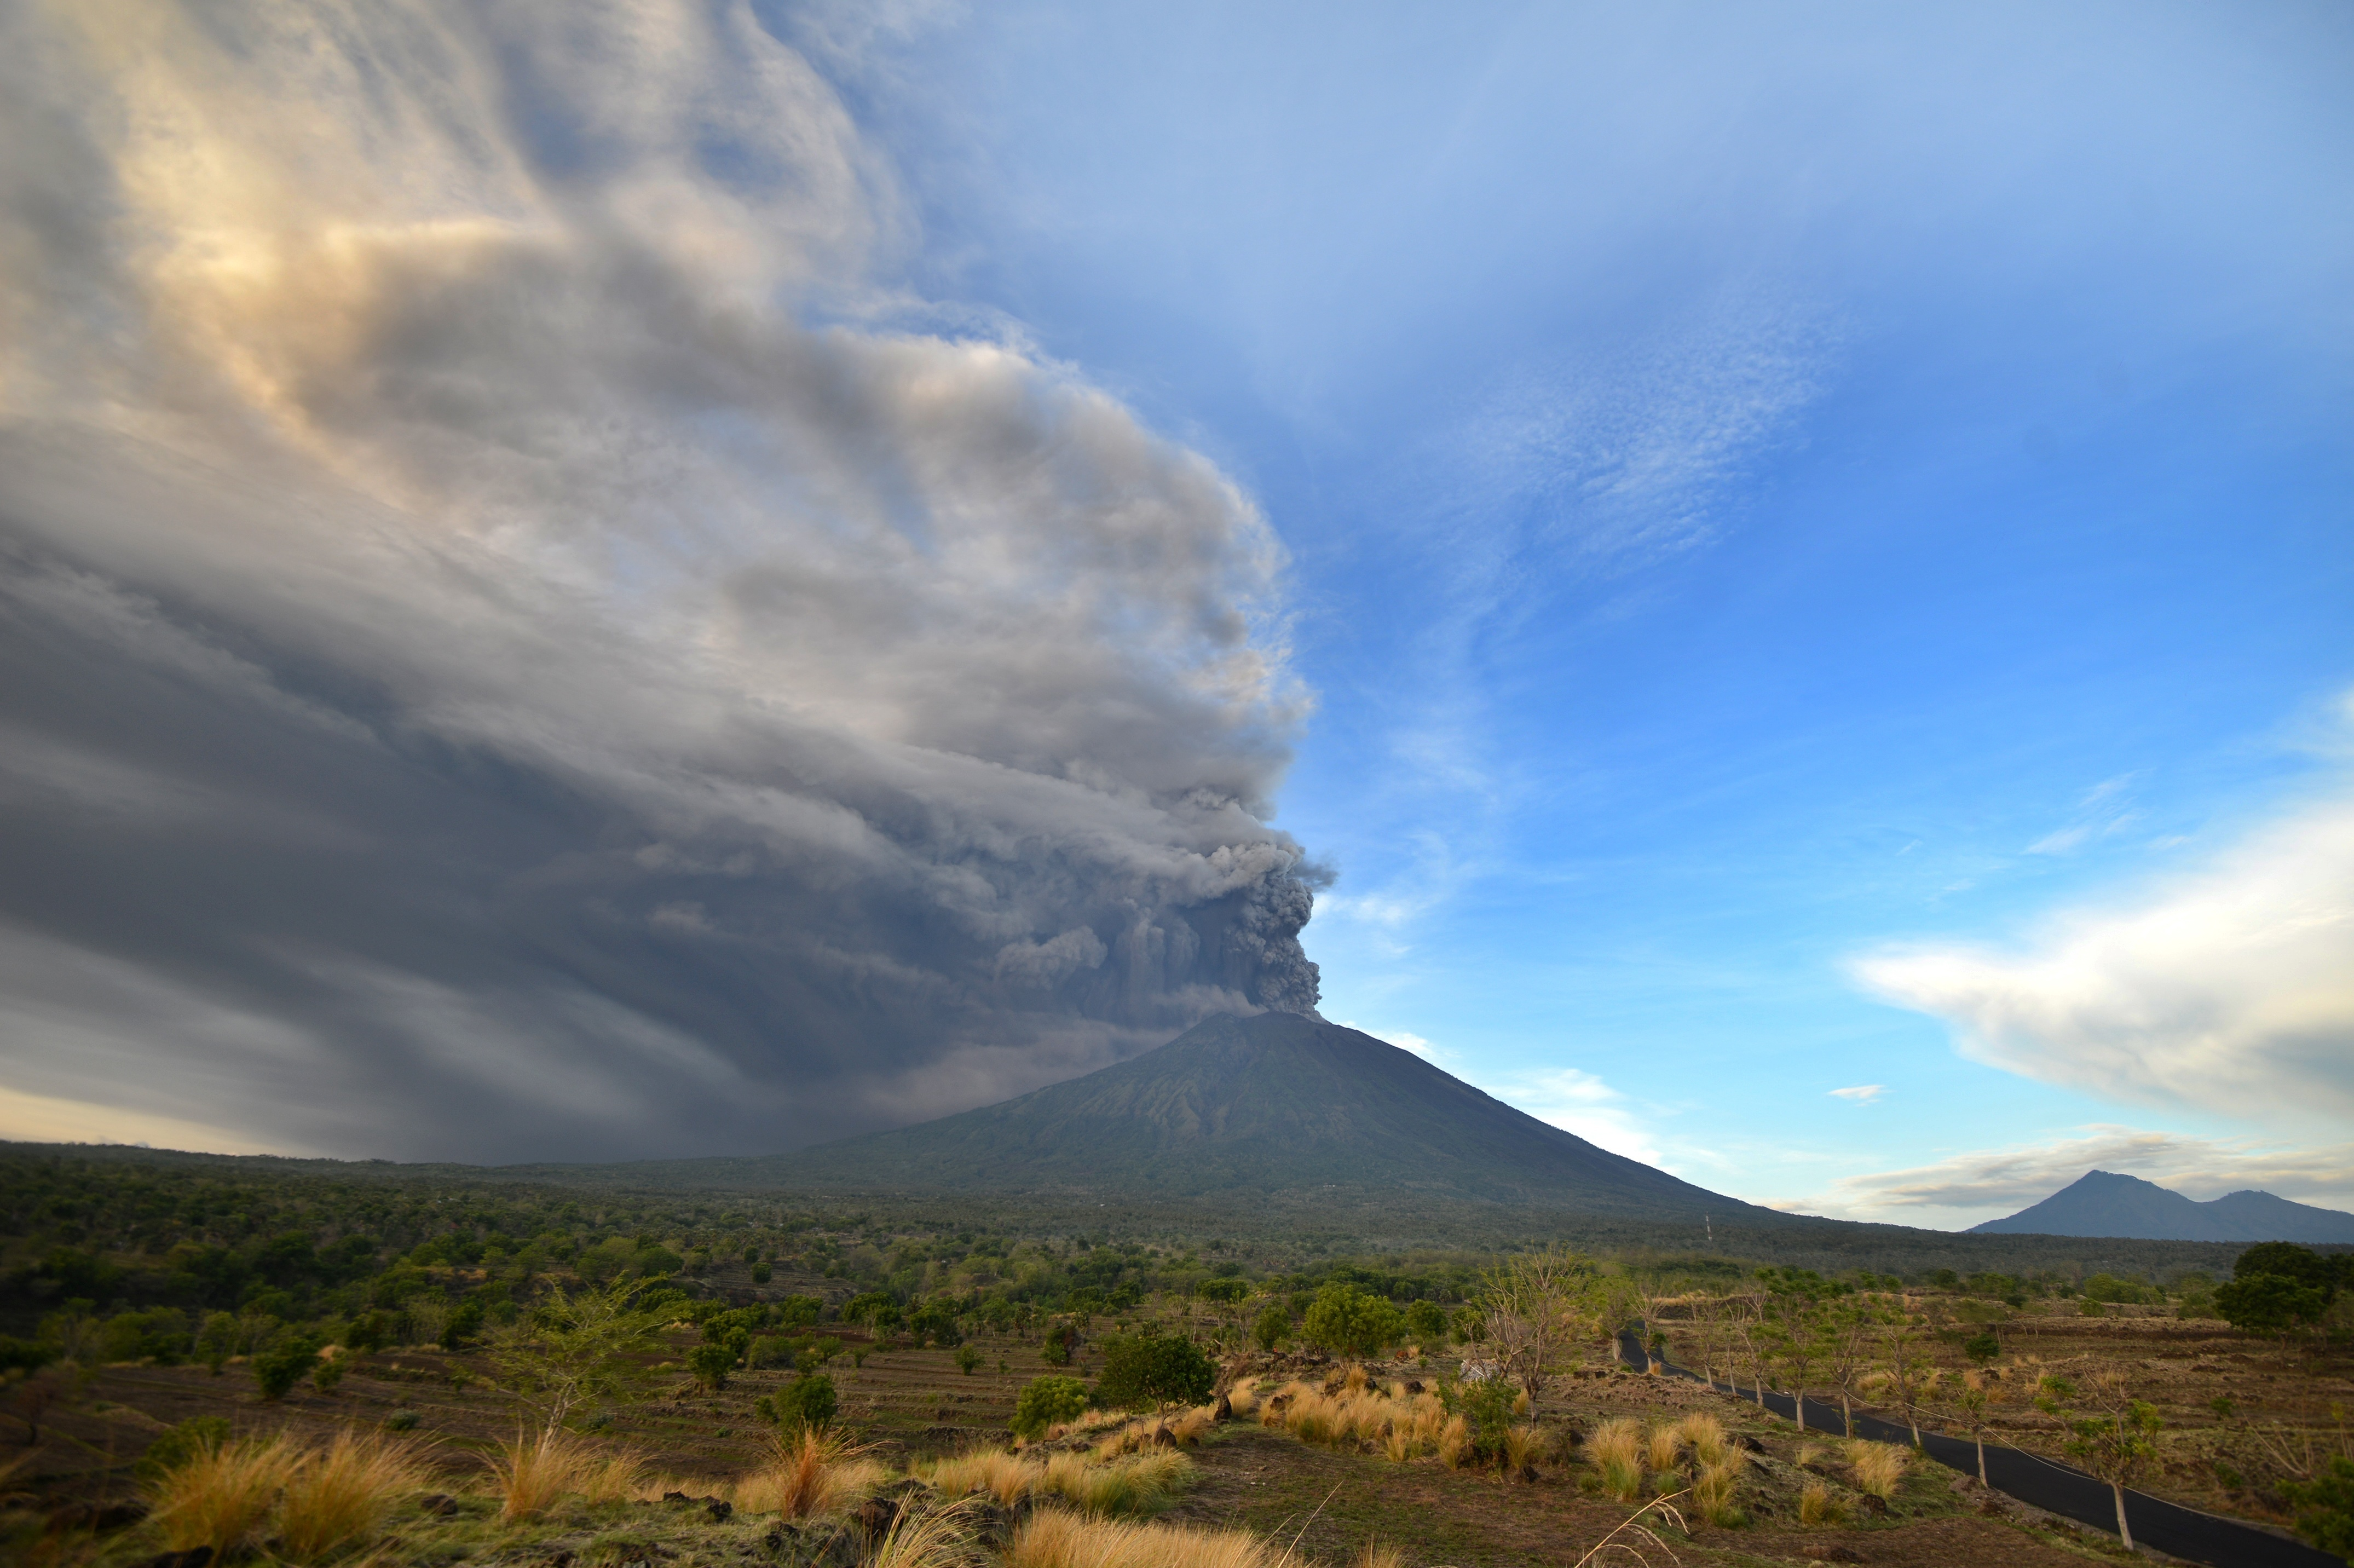 In Bali, a volcano spews smoke, new fears of eruption